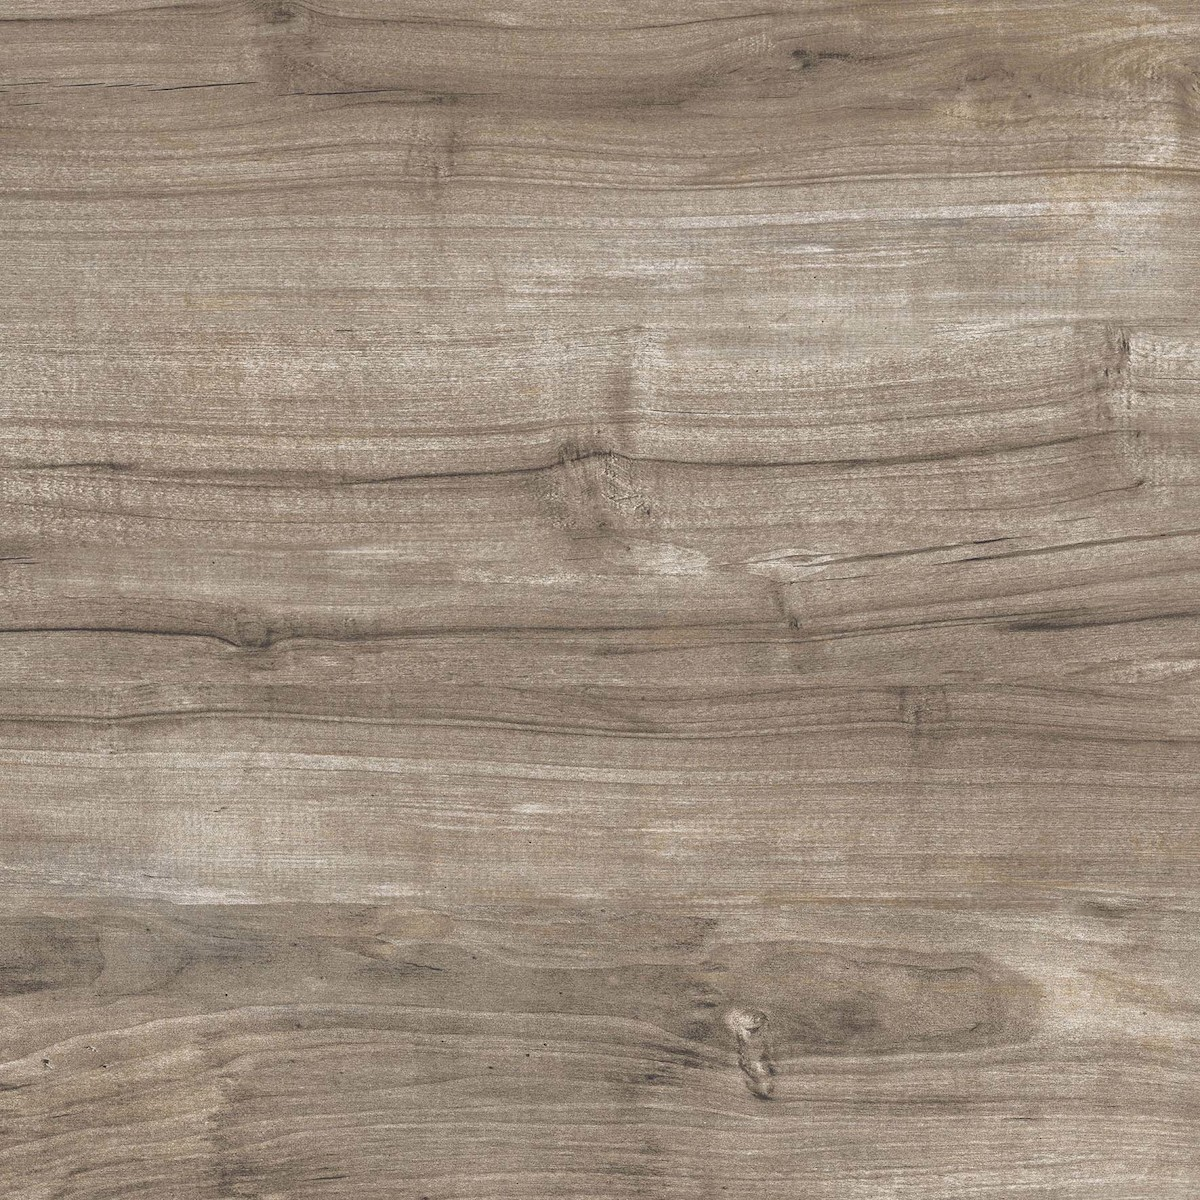 2cm dlažba Sintesi Timber S noce 60x60x2 cm mat 20TIMBER11751R